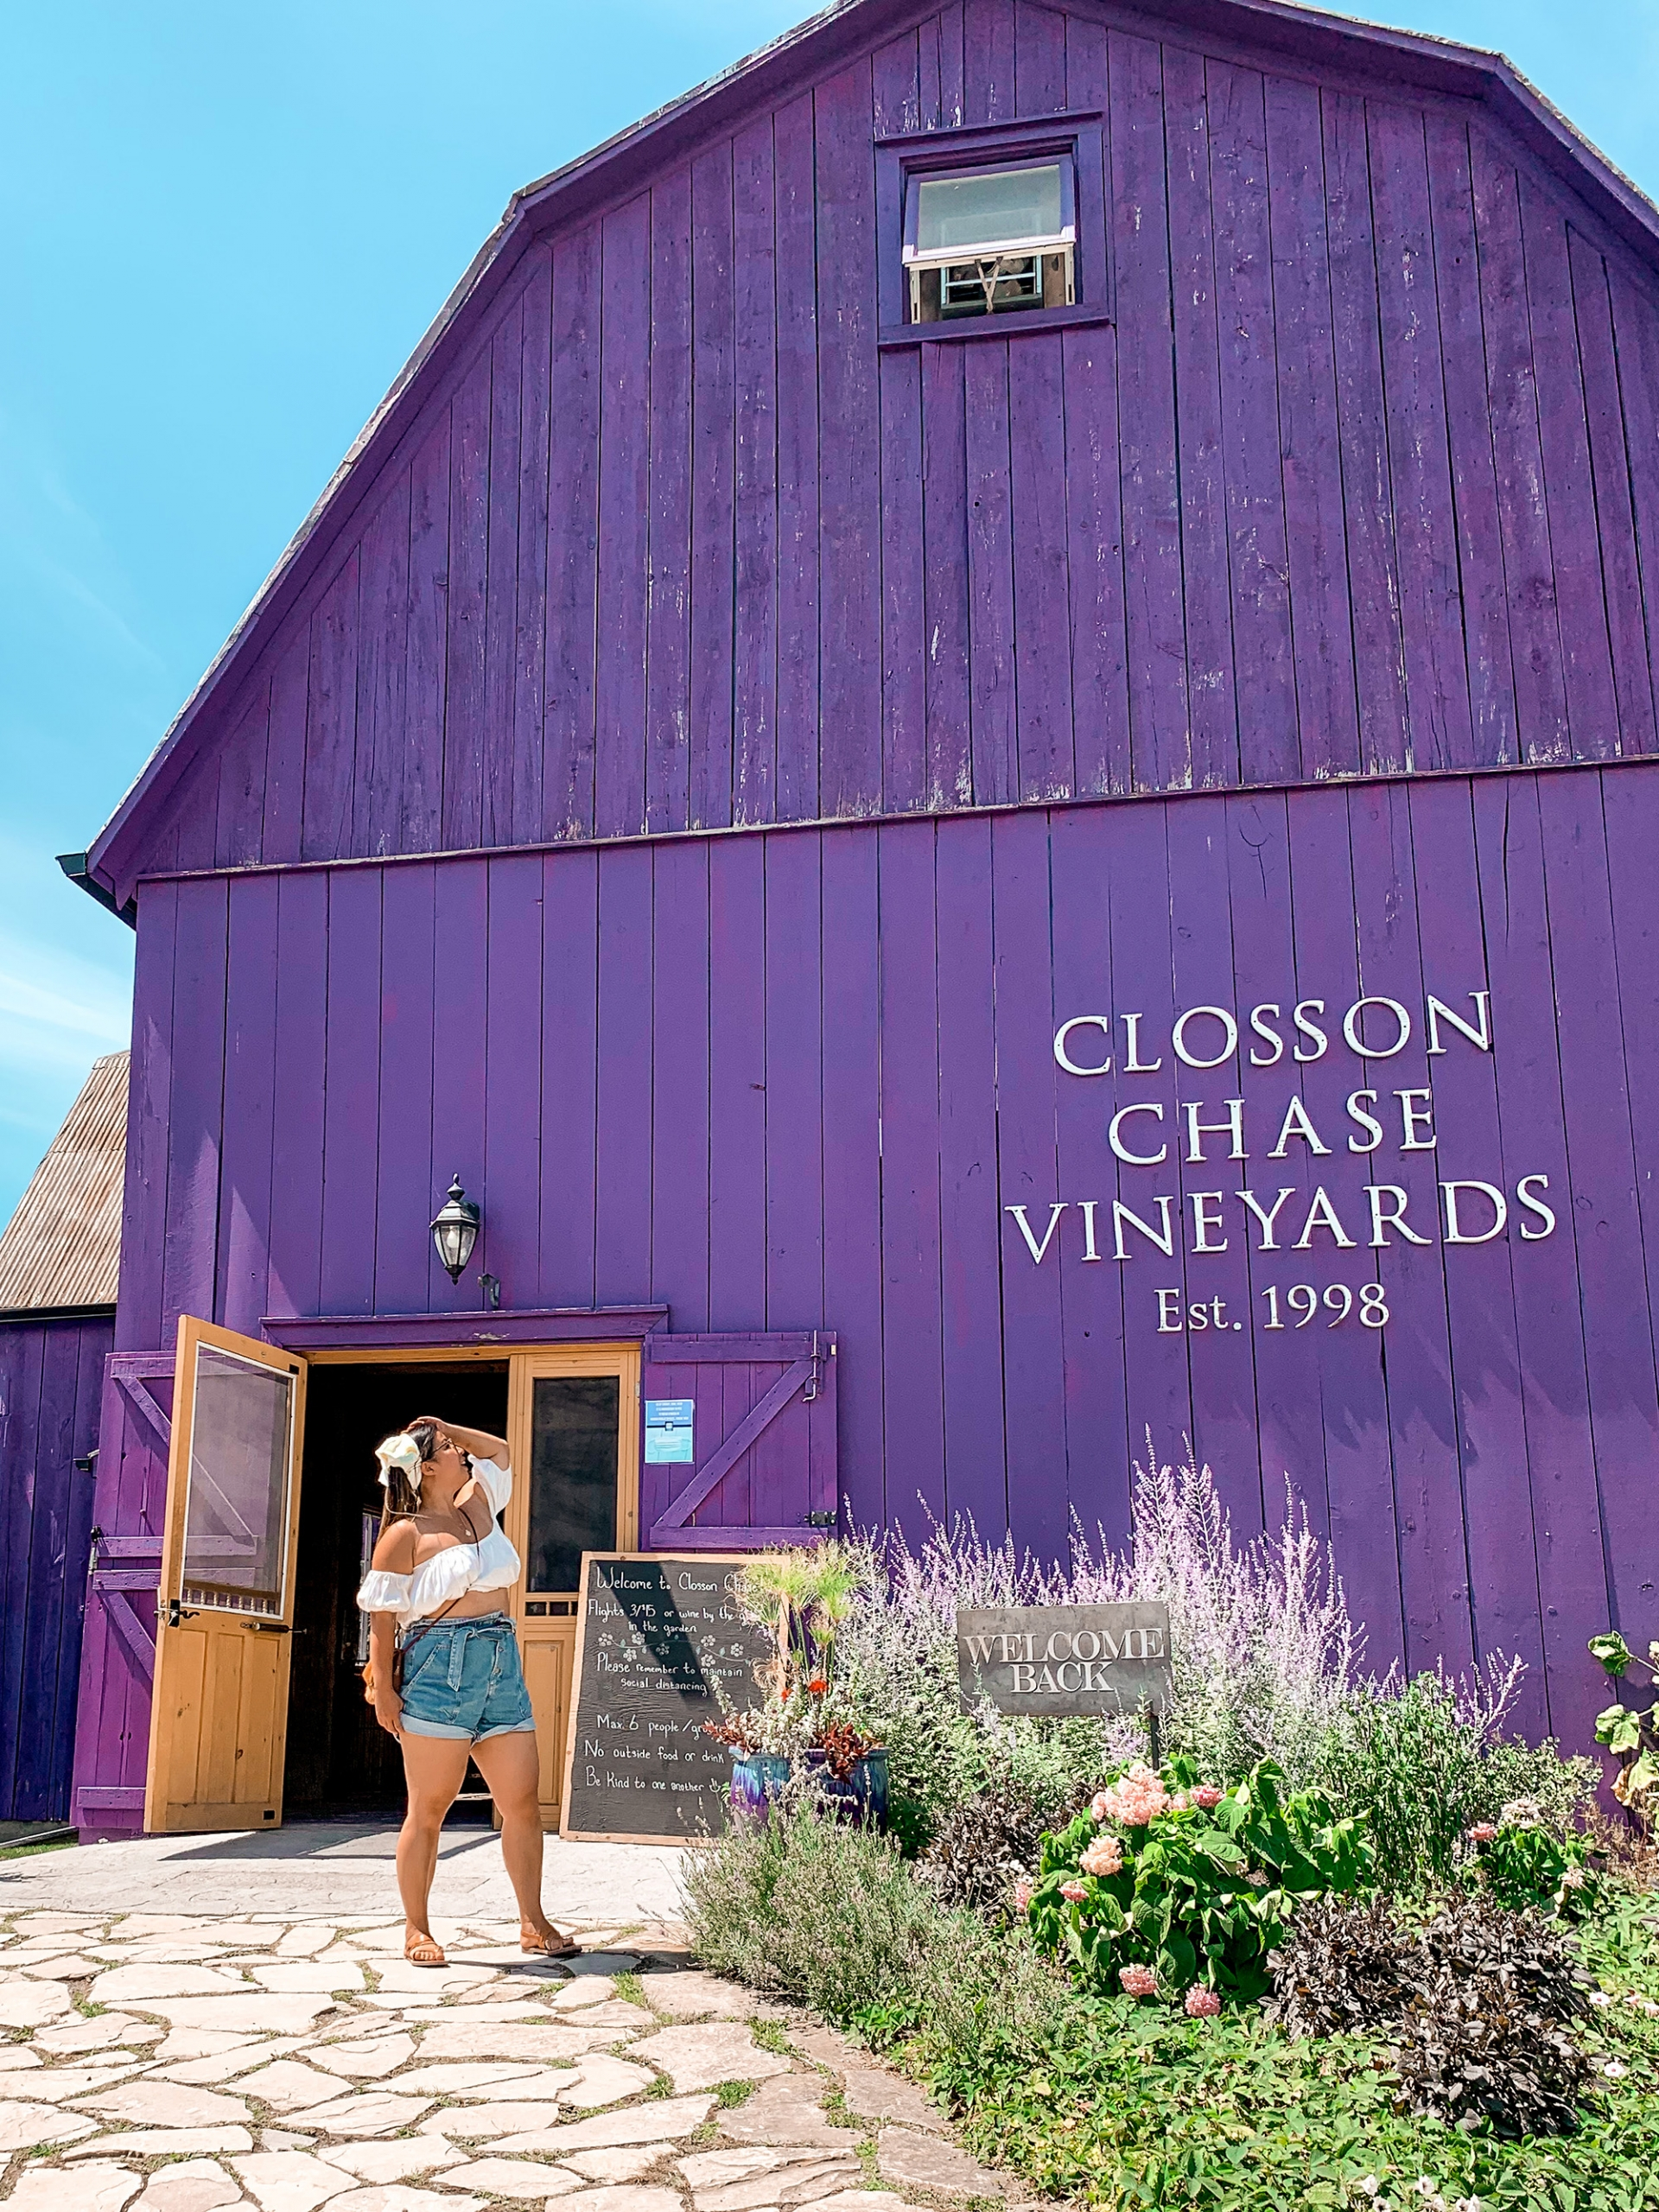 Prince Edward County wineries - Closson Chase Vineyards